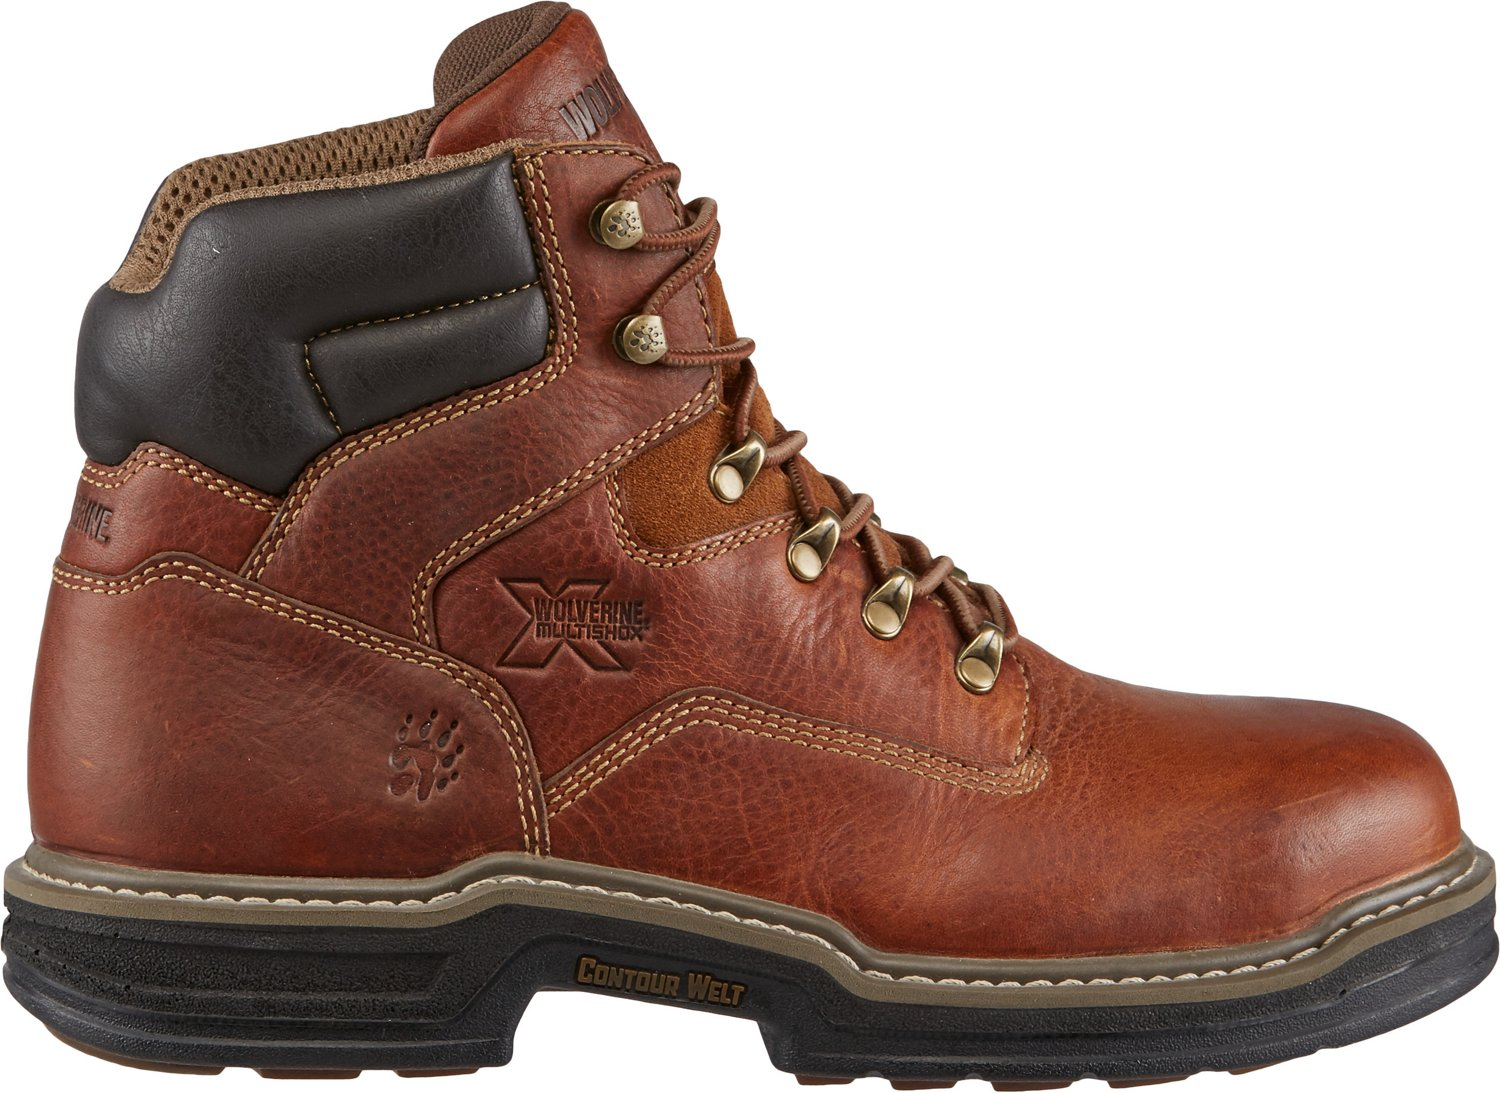 160e8c9b7d748a Display product reviews for Wolverine Men s Raider Steel-Toe Work Boots